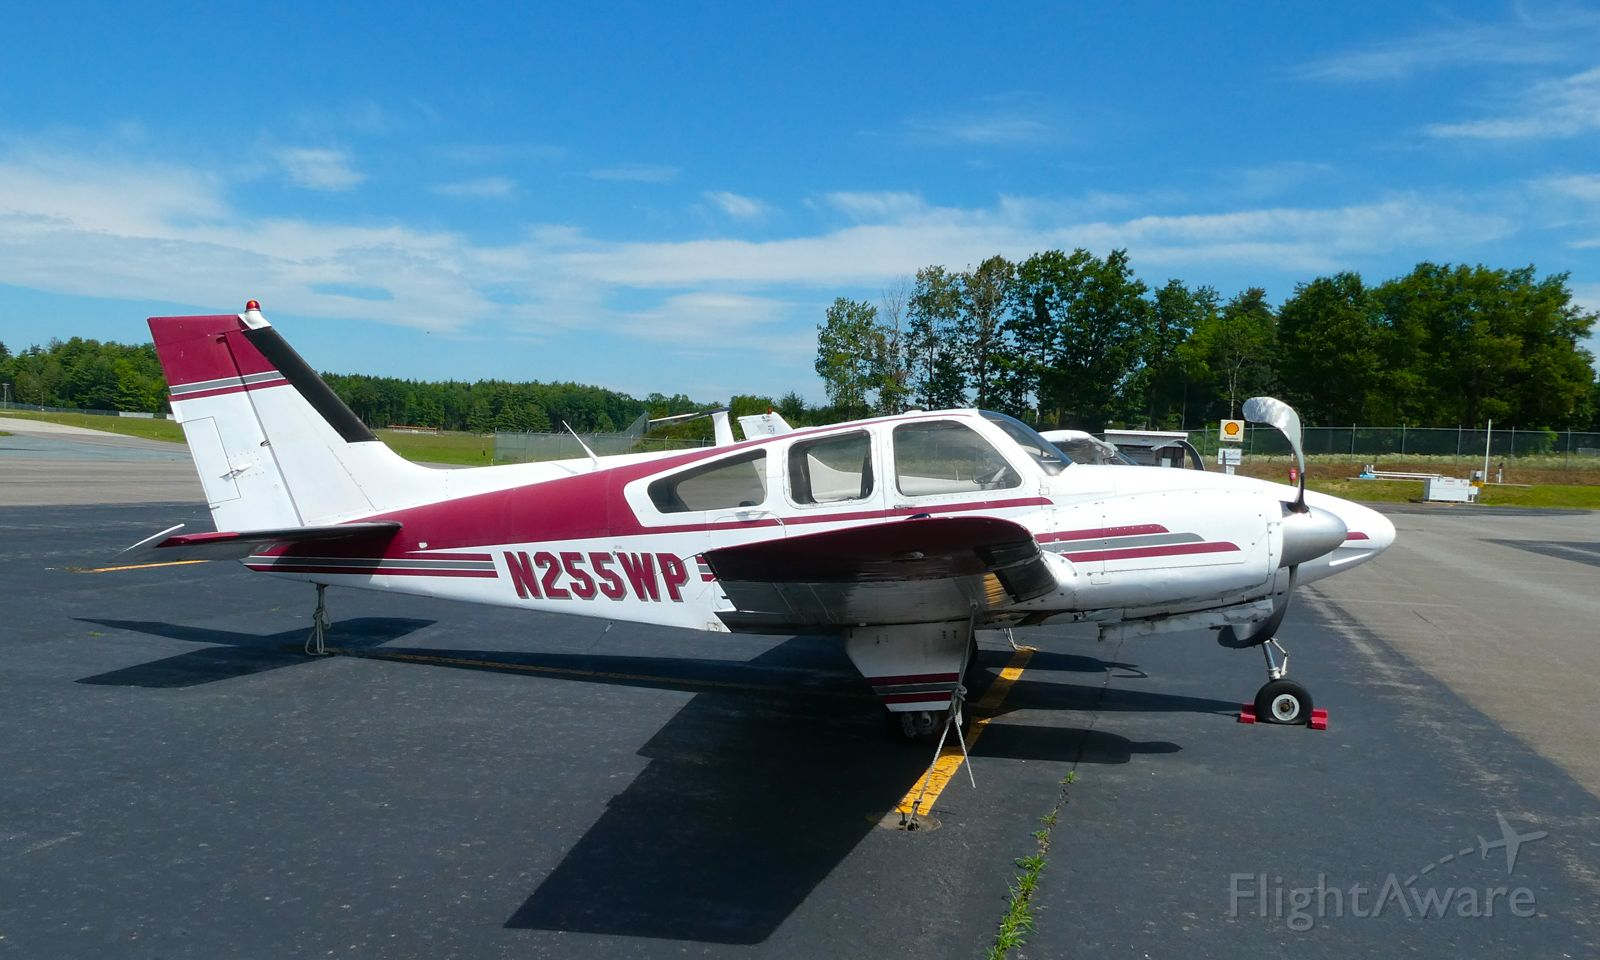 N255WP — - Plan damaged sitting at this location at Keene, NH for at least 2 years as of 2020.  Abandoned, tires flat, no avionics.